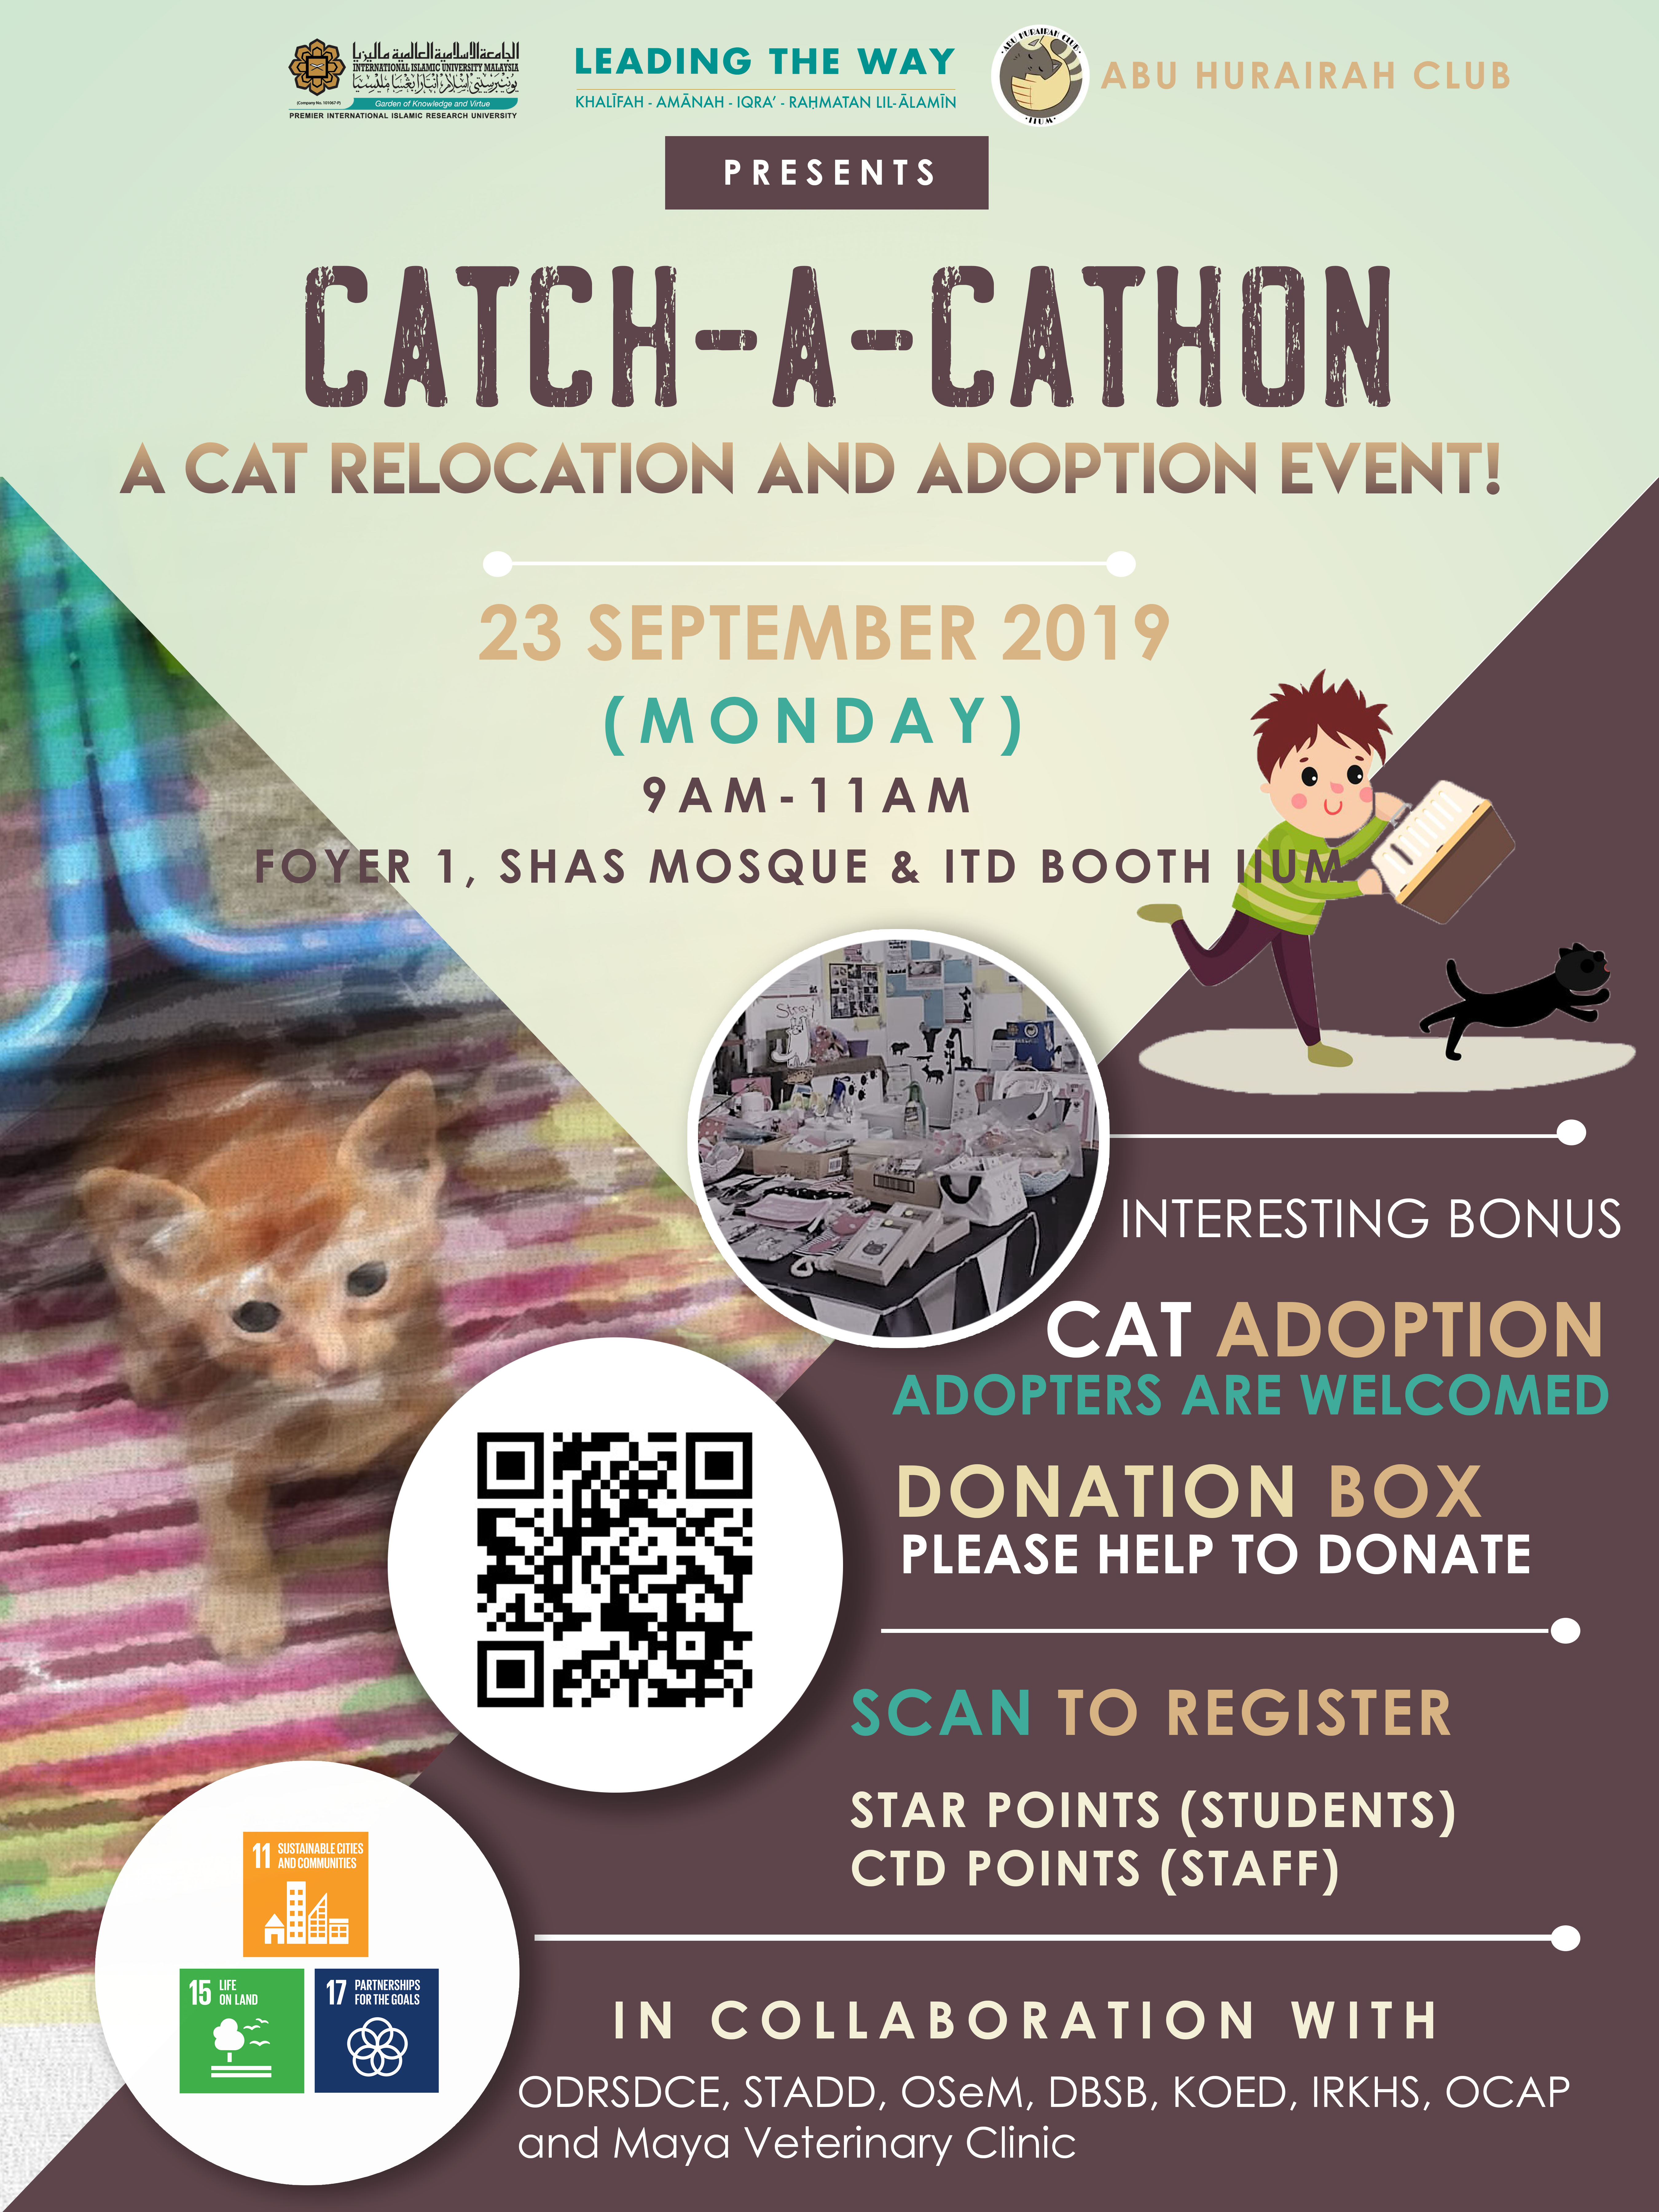 INVITATION TO ATTEND THE CATCH-A-CATHON RELOCATION AND CAT ADOPTION EVENT